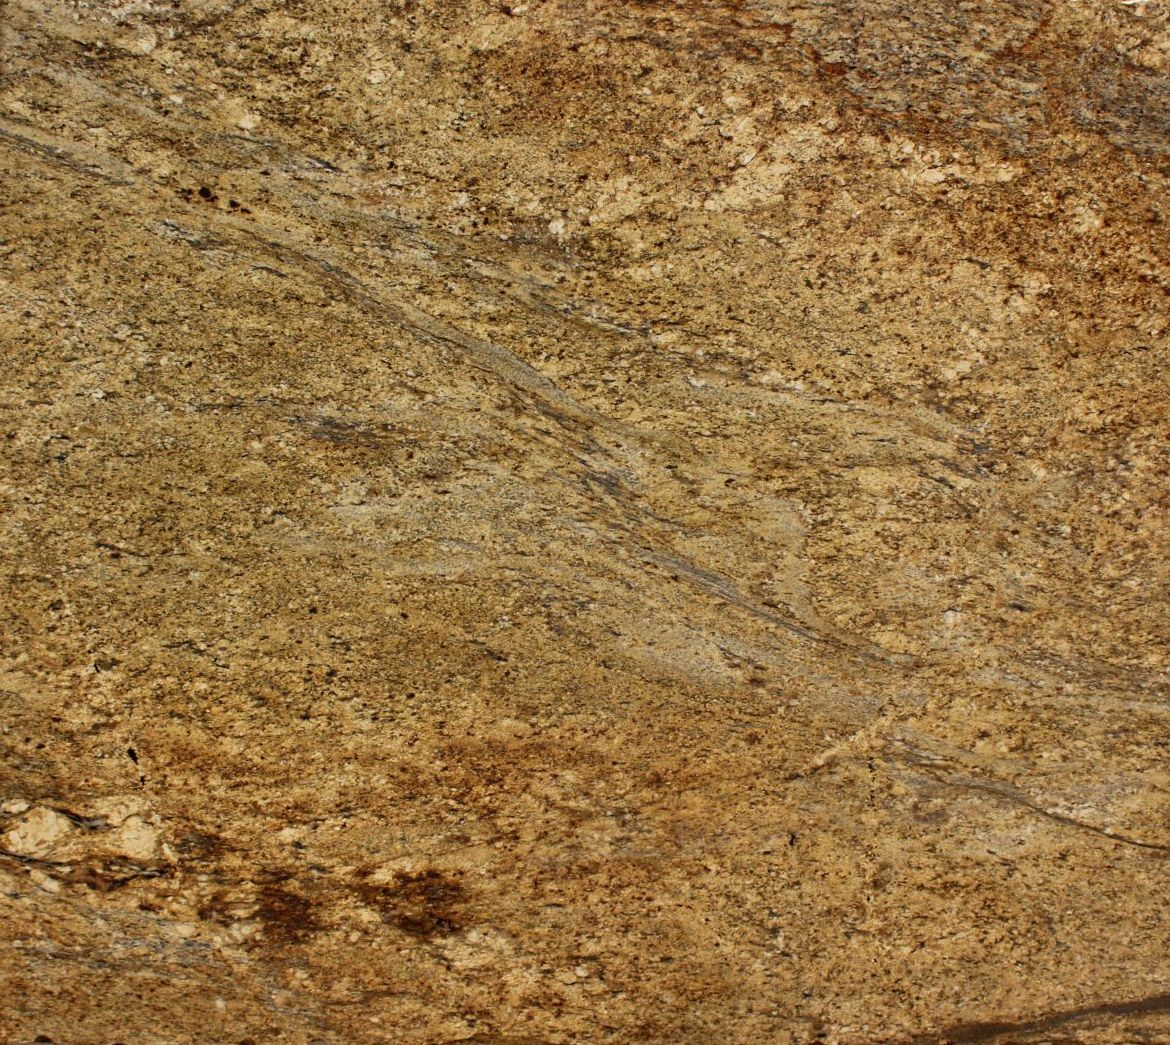 YELLOW RIVER GRANITE SLAB 20MM